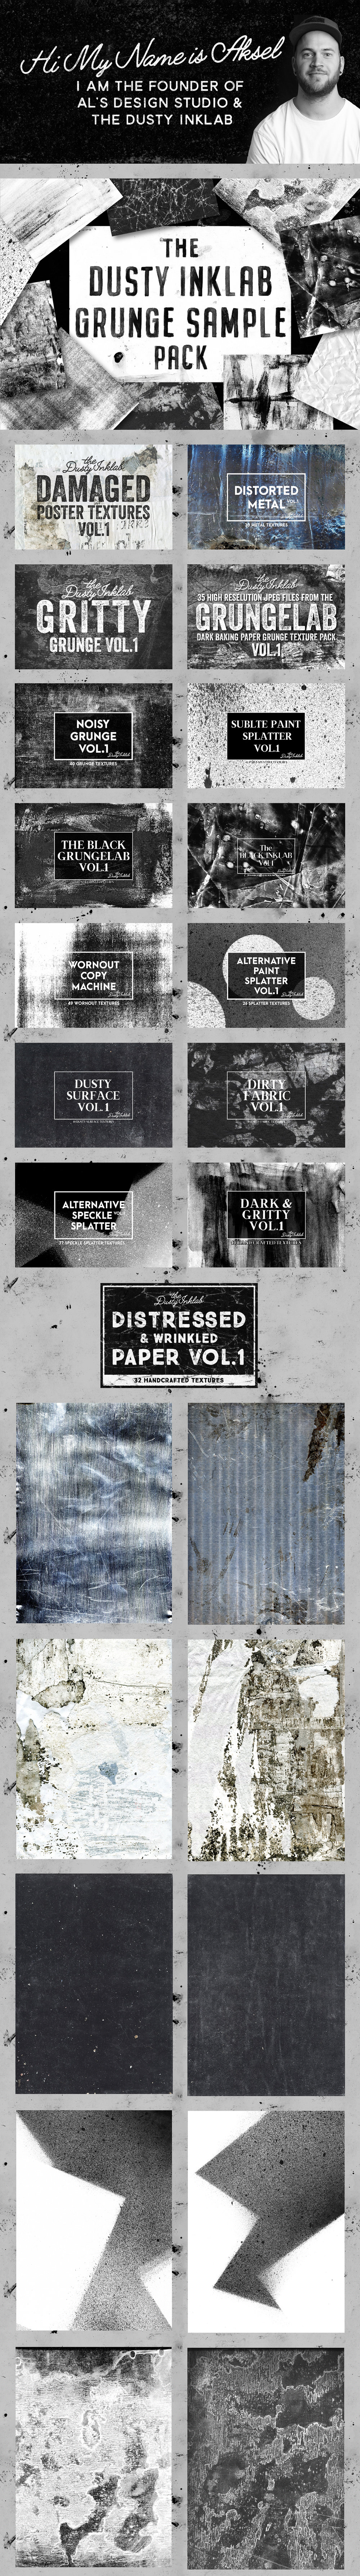 The Dusty Inklab Grunge Sample Pack 1.jpg